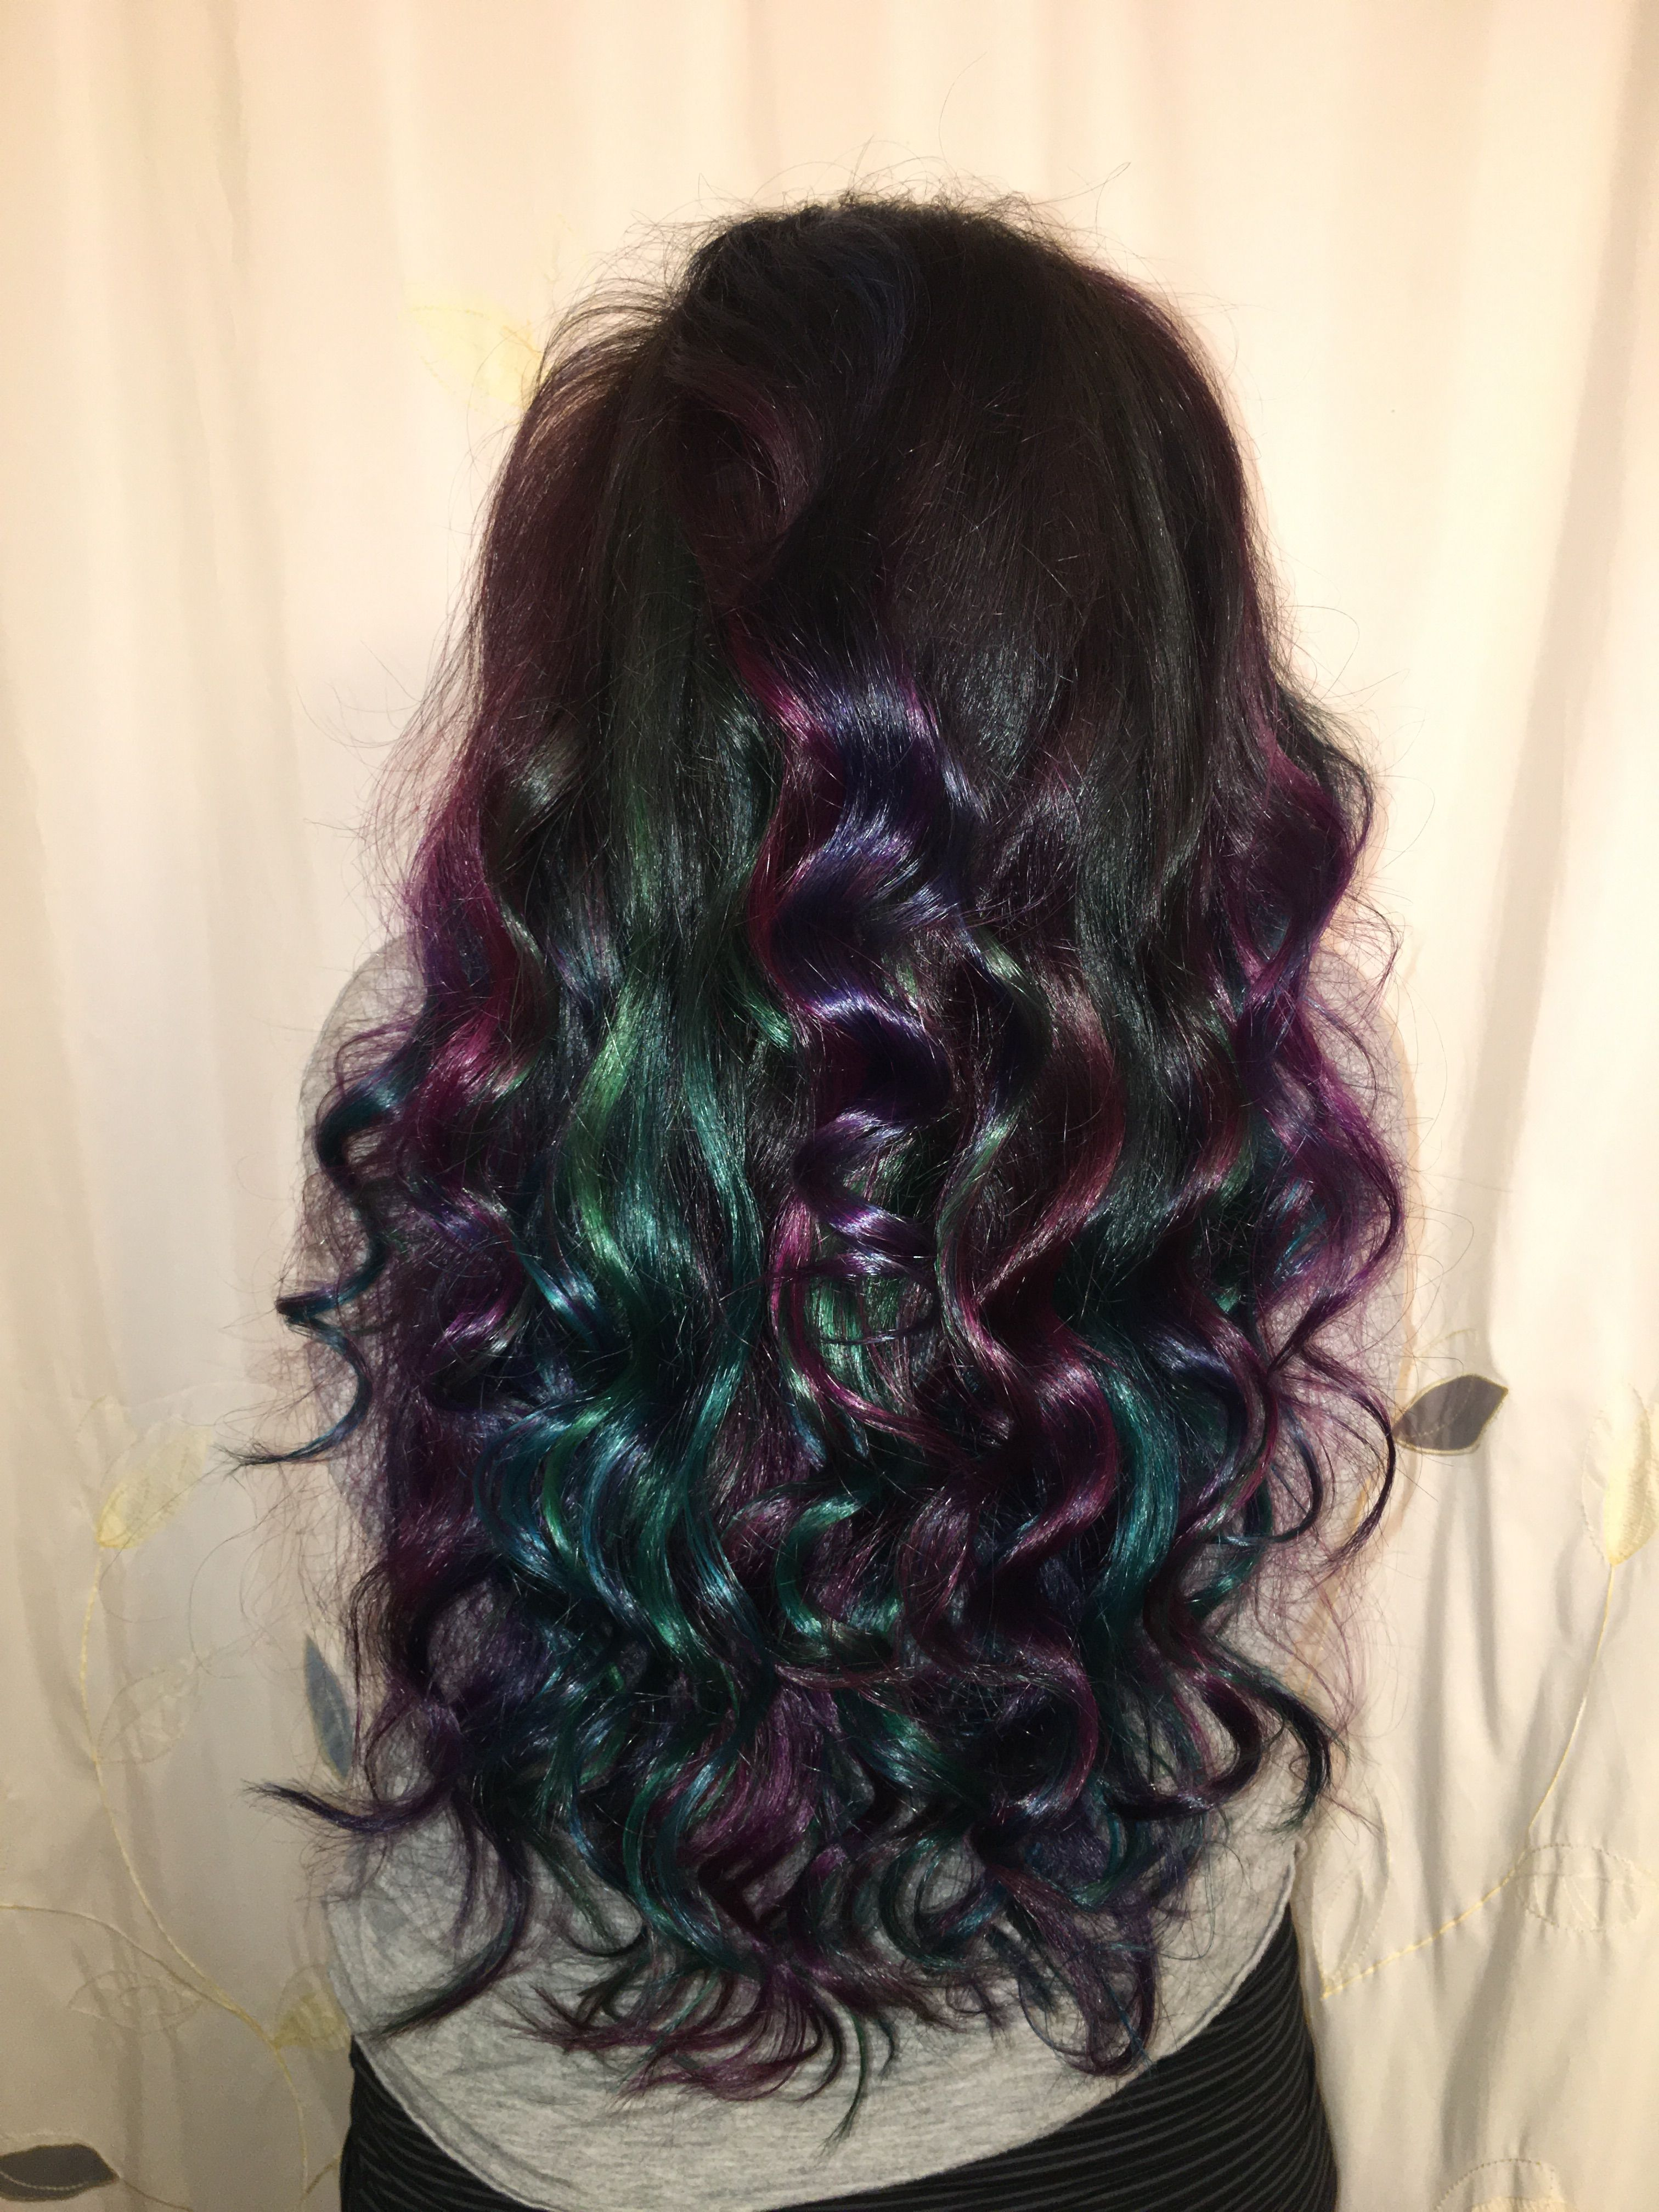 Oil Slick Hair Peacock Hair Arctic Fox Hair Color Long